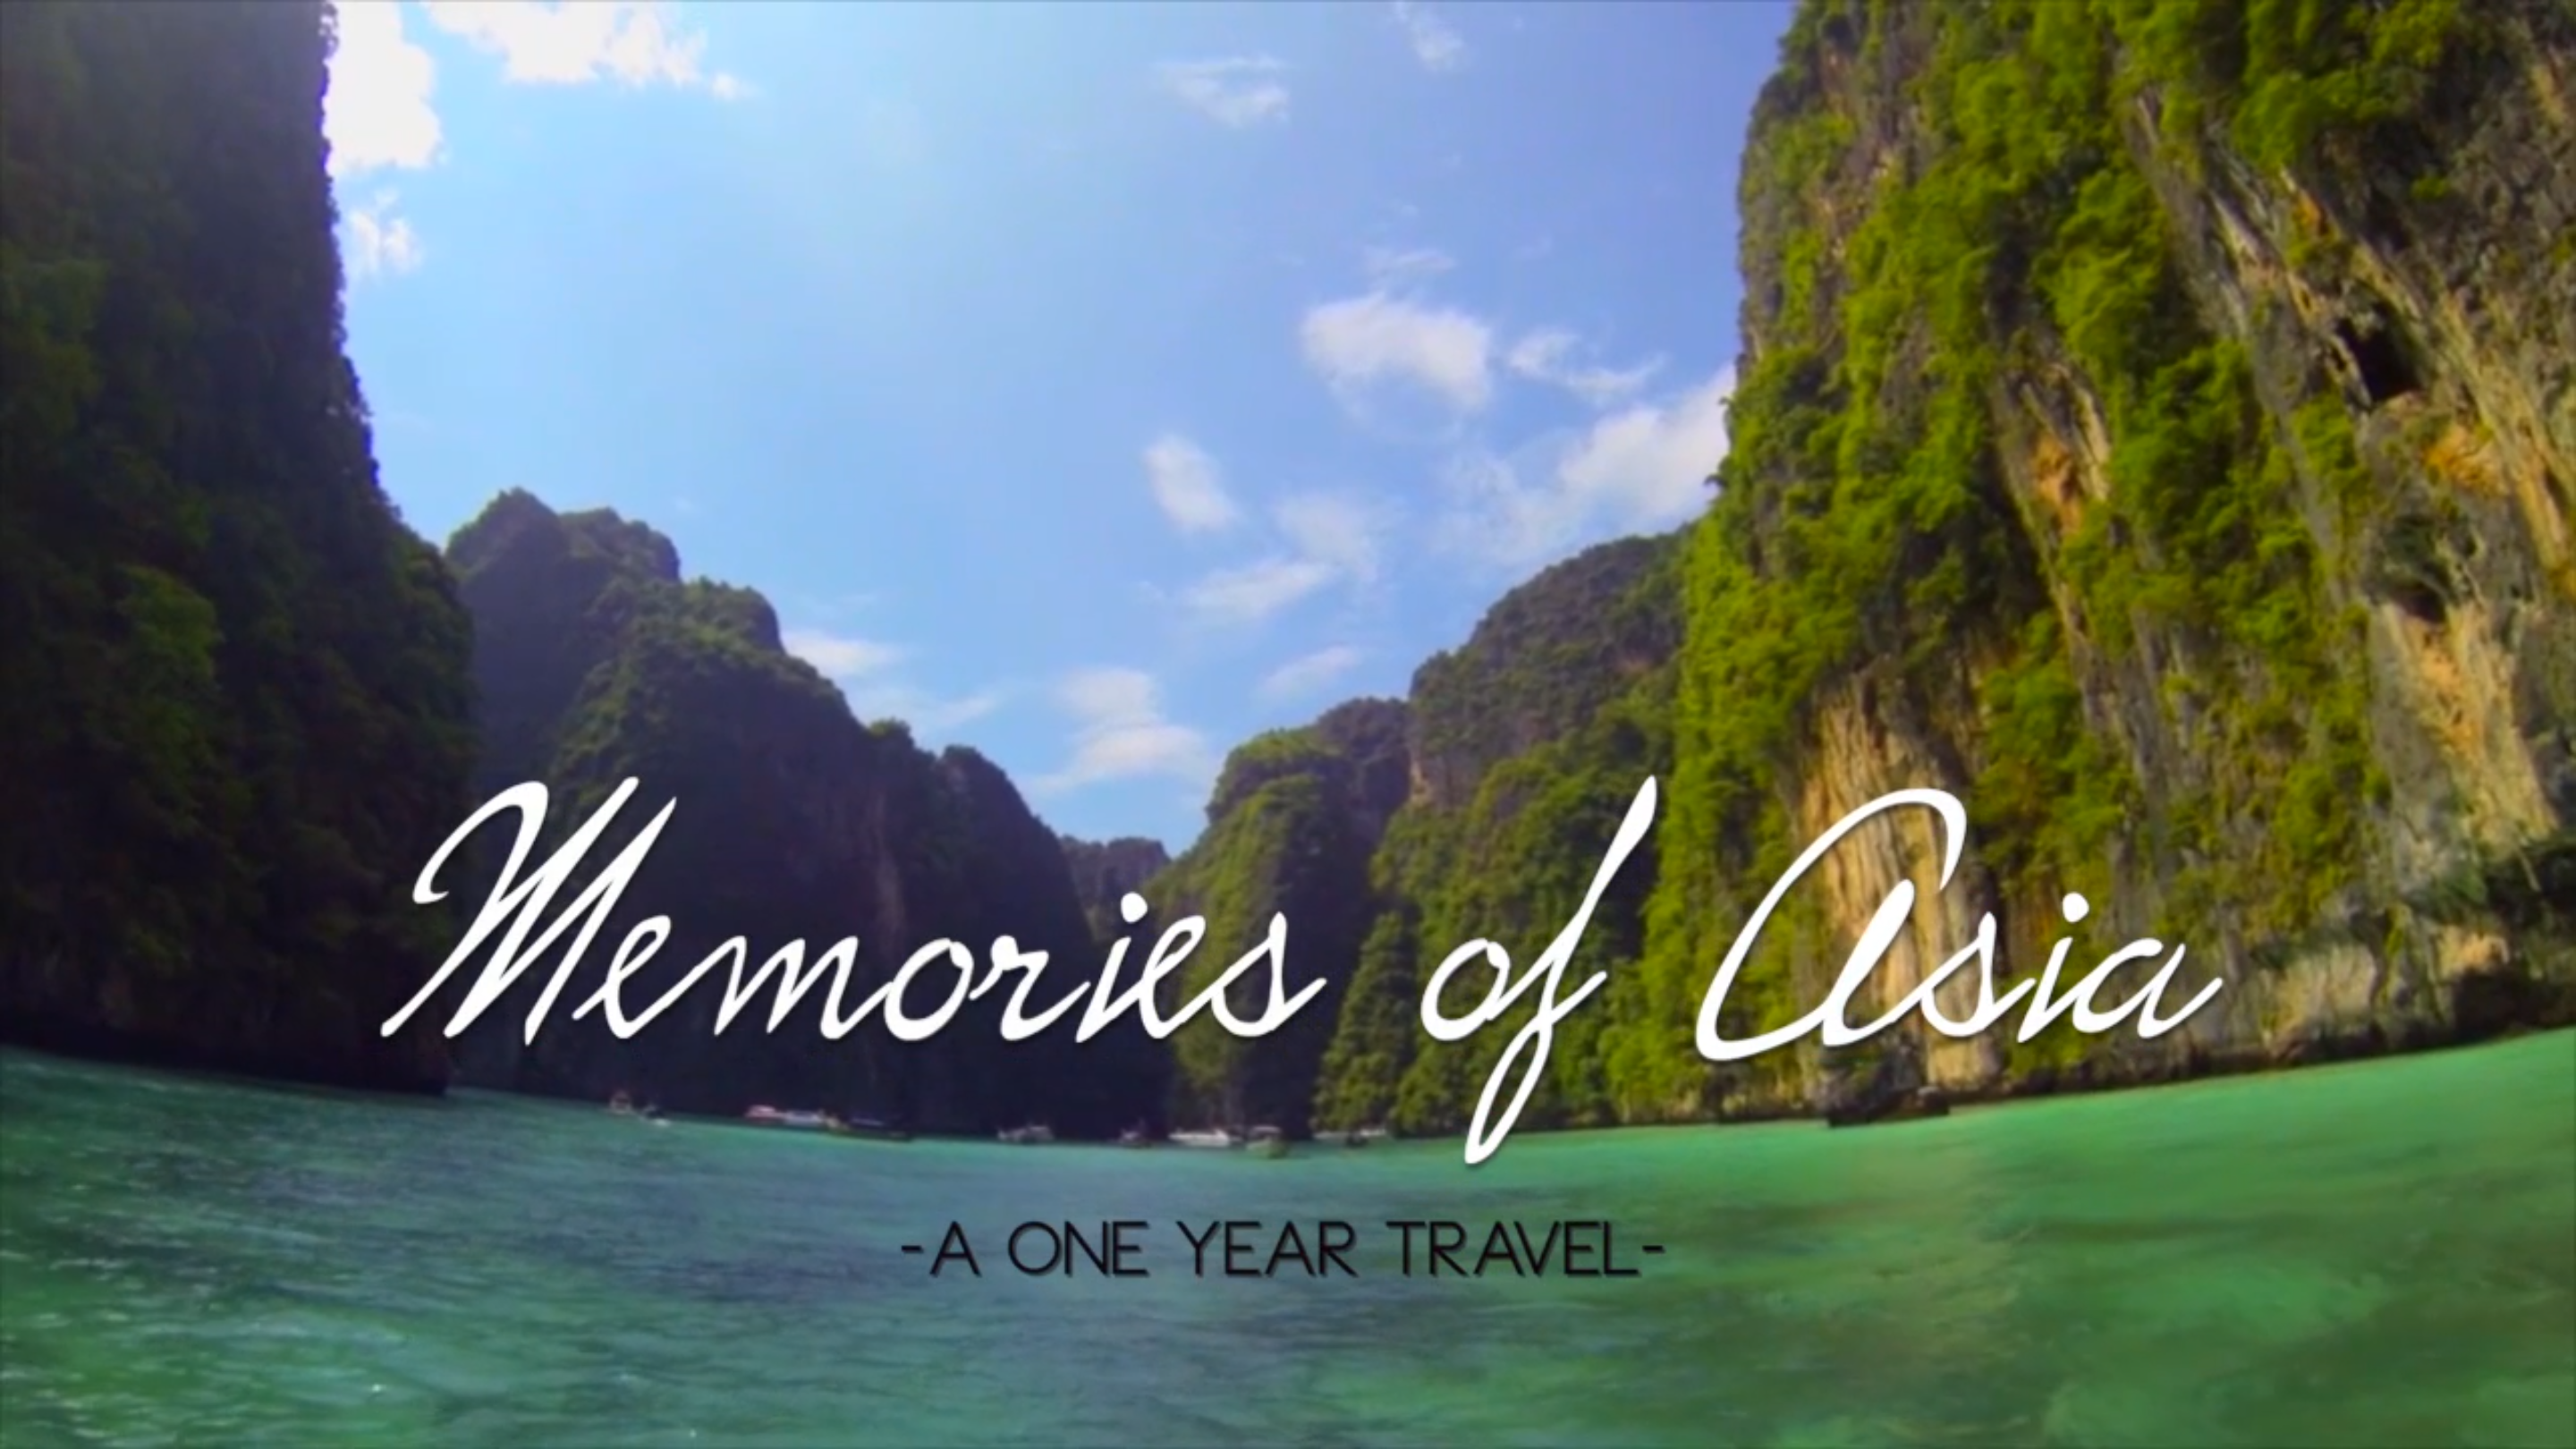 Memories of Asia -One year Travel-